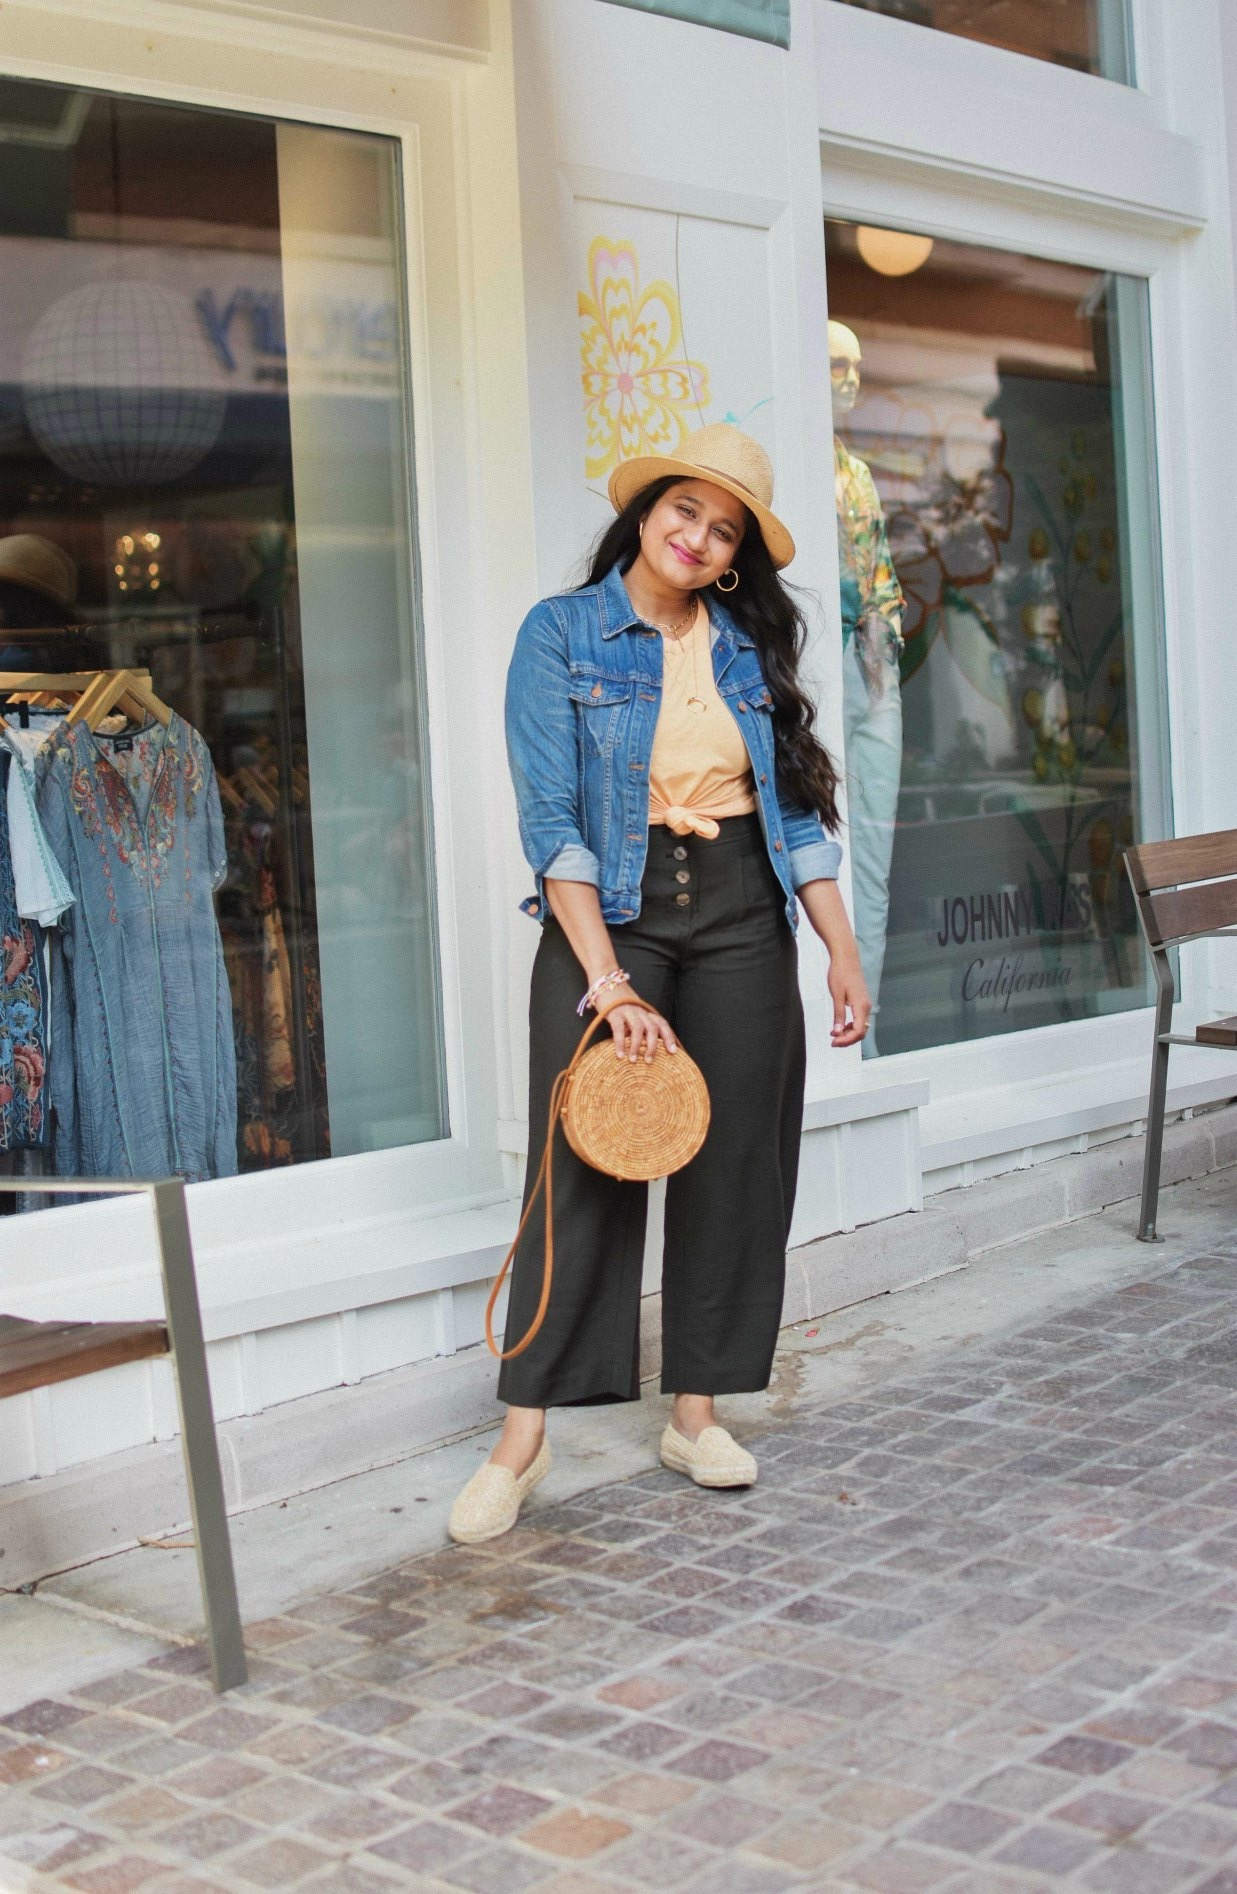 Wearing Loft Button Front Lightweight Fluid Pants,Madewell whisper tee, Manebi Espadrille, Straw bag, Madewell Denim Jacket